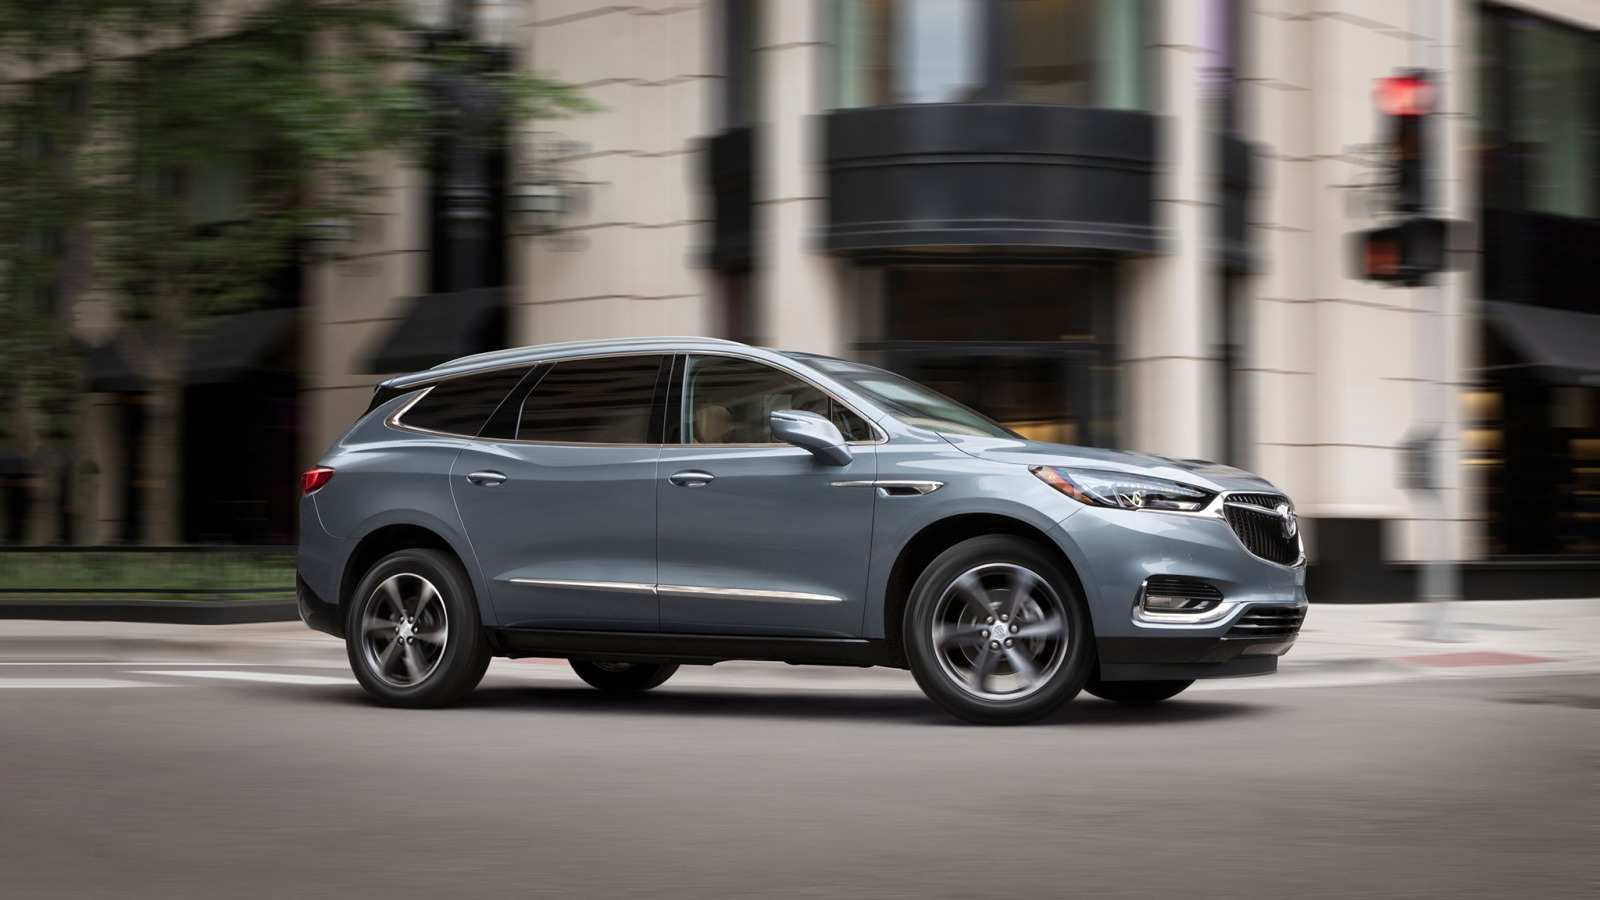 14 All New The 2019 Buick Enclave Wheelbase Review Pricing by The 2019 Buick Enclave Wheelbase Review